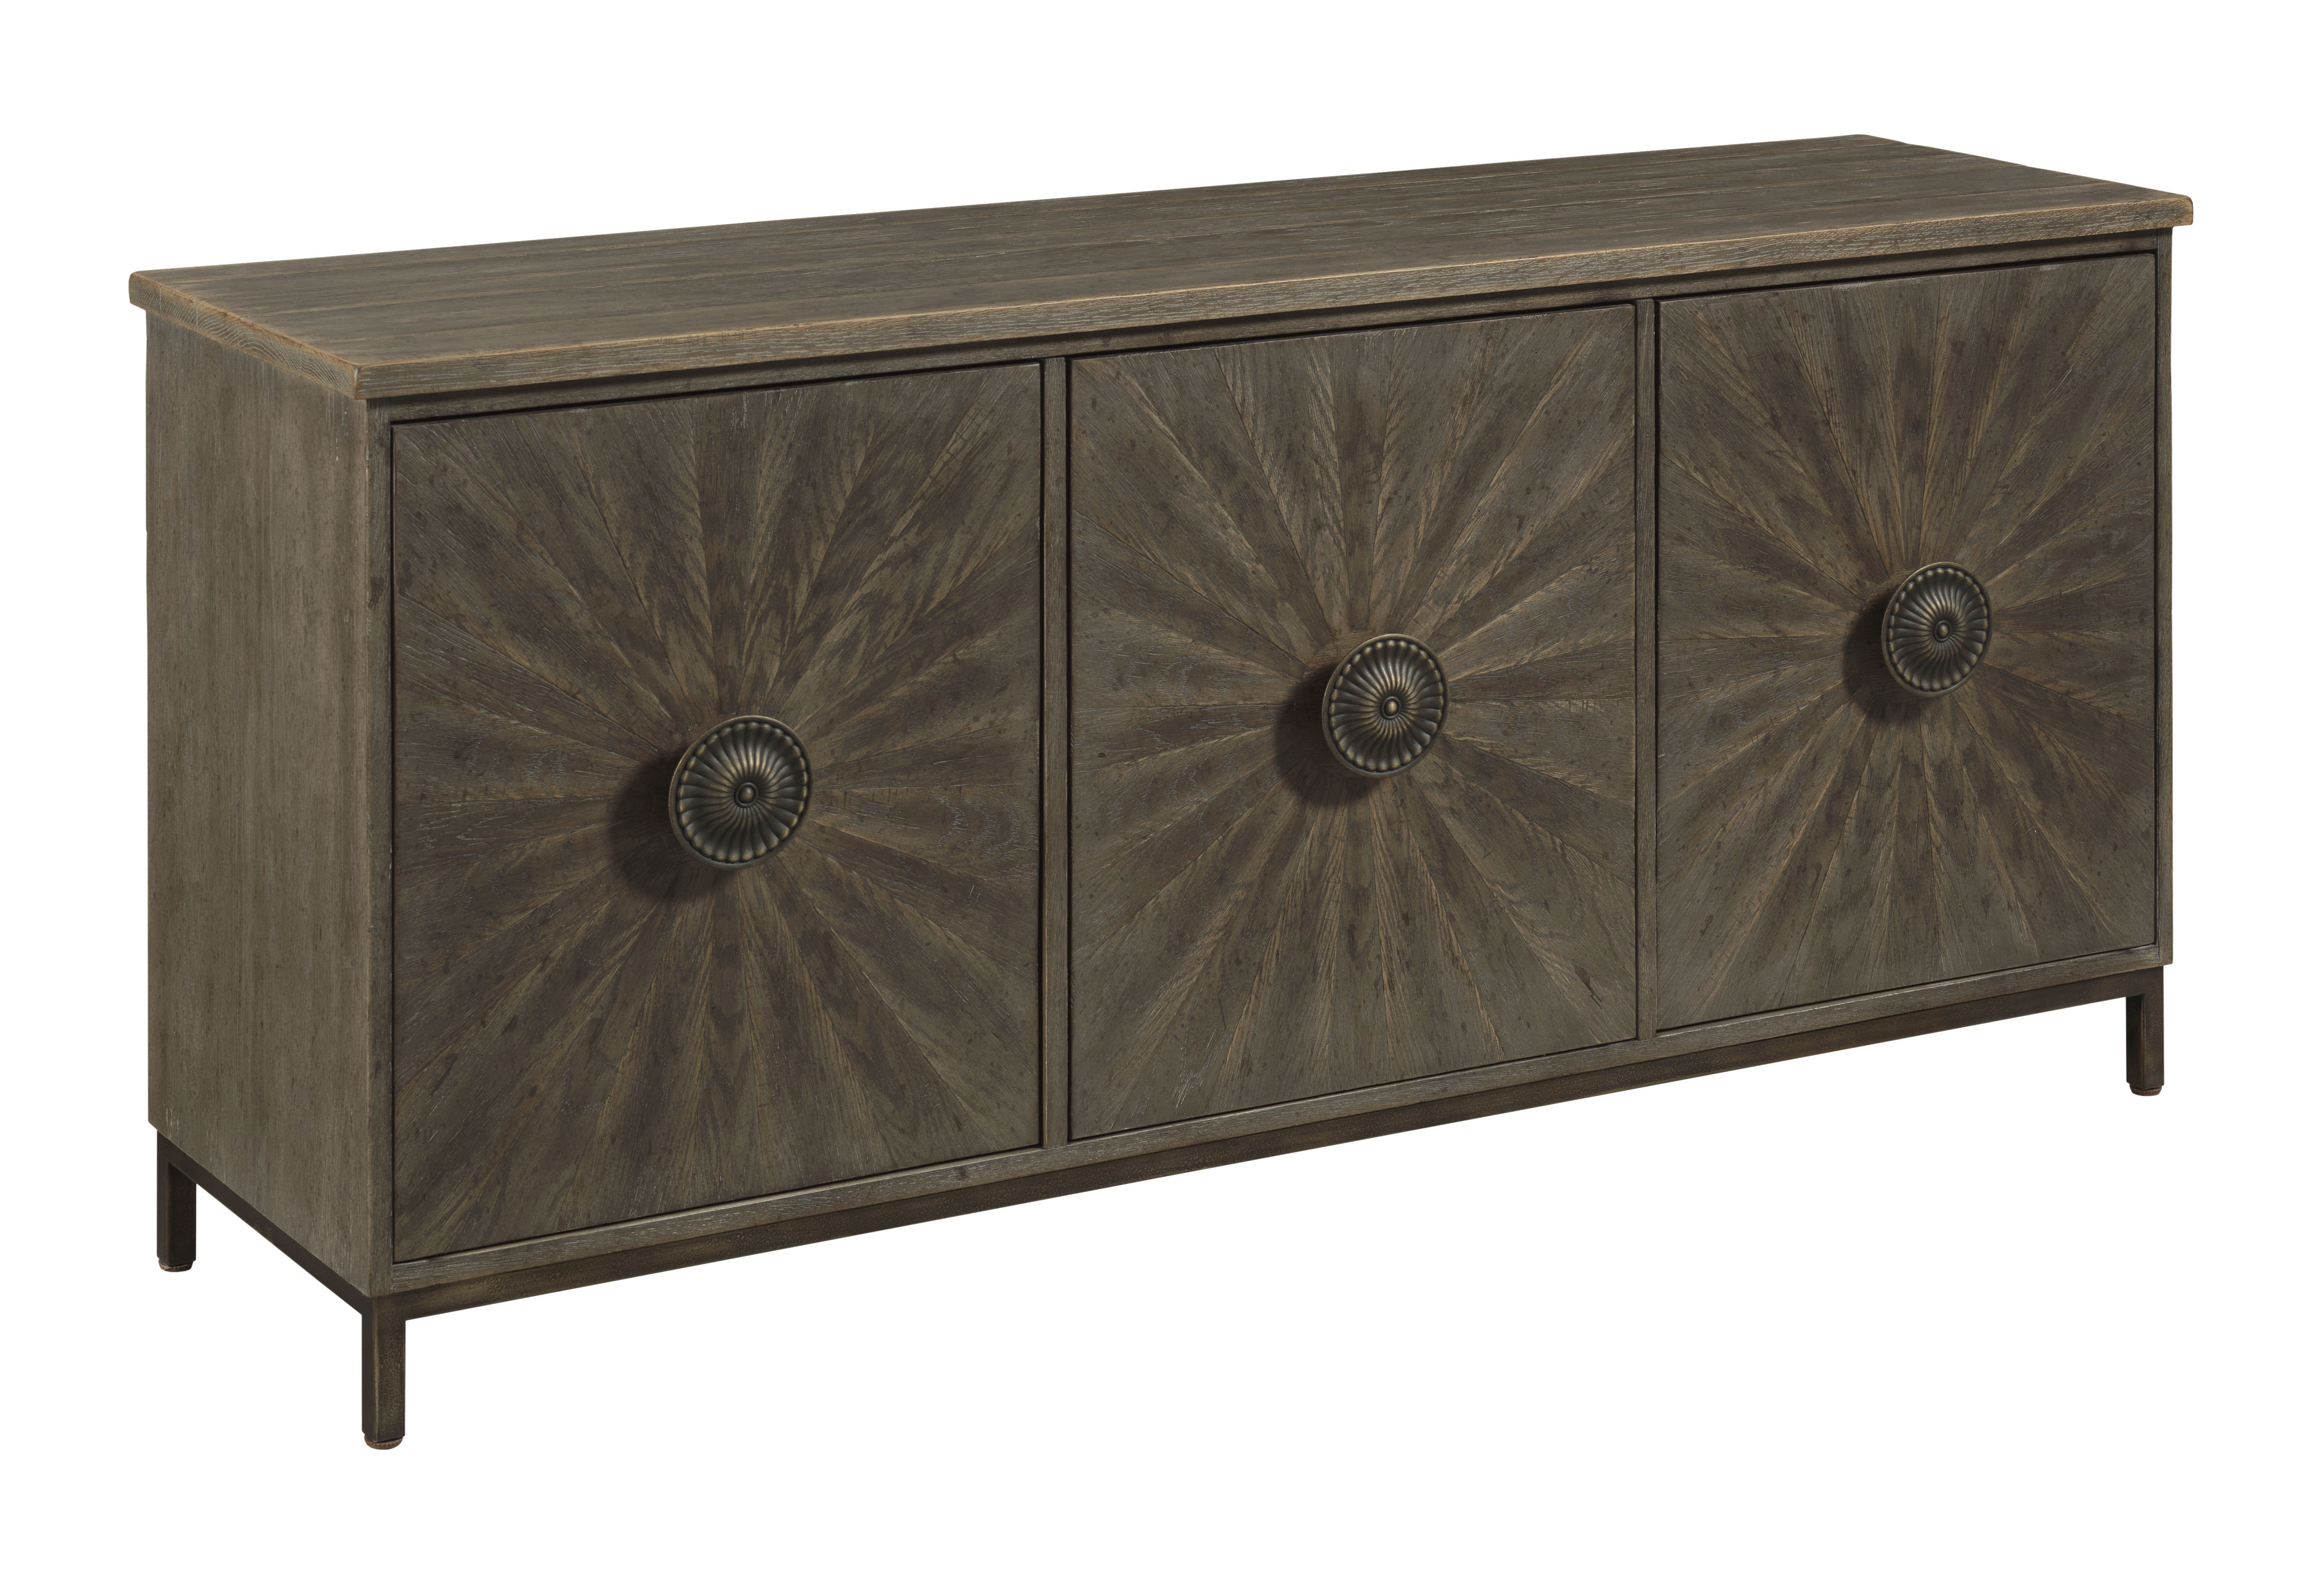 Emporium Entertainment Console by Hammary at Crowley Furniture & Mattress